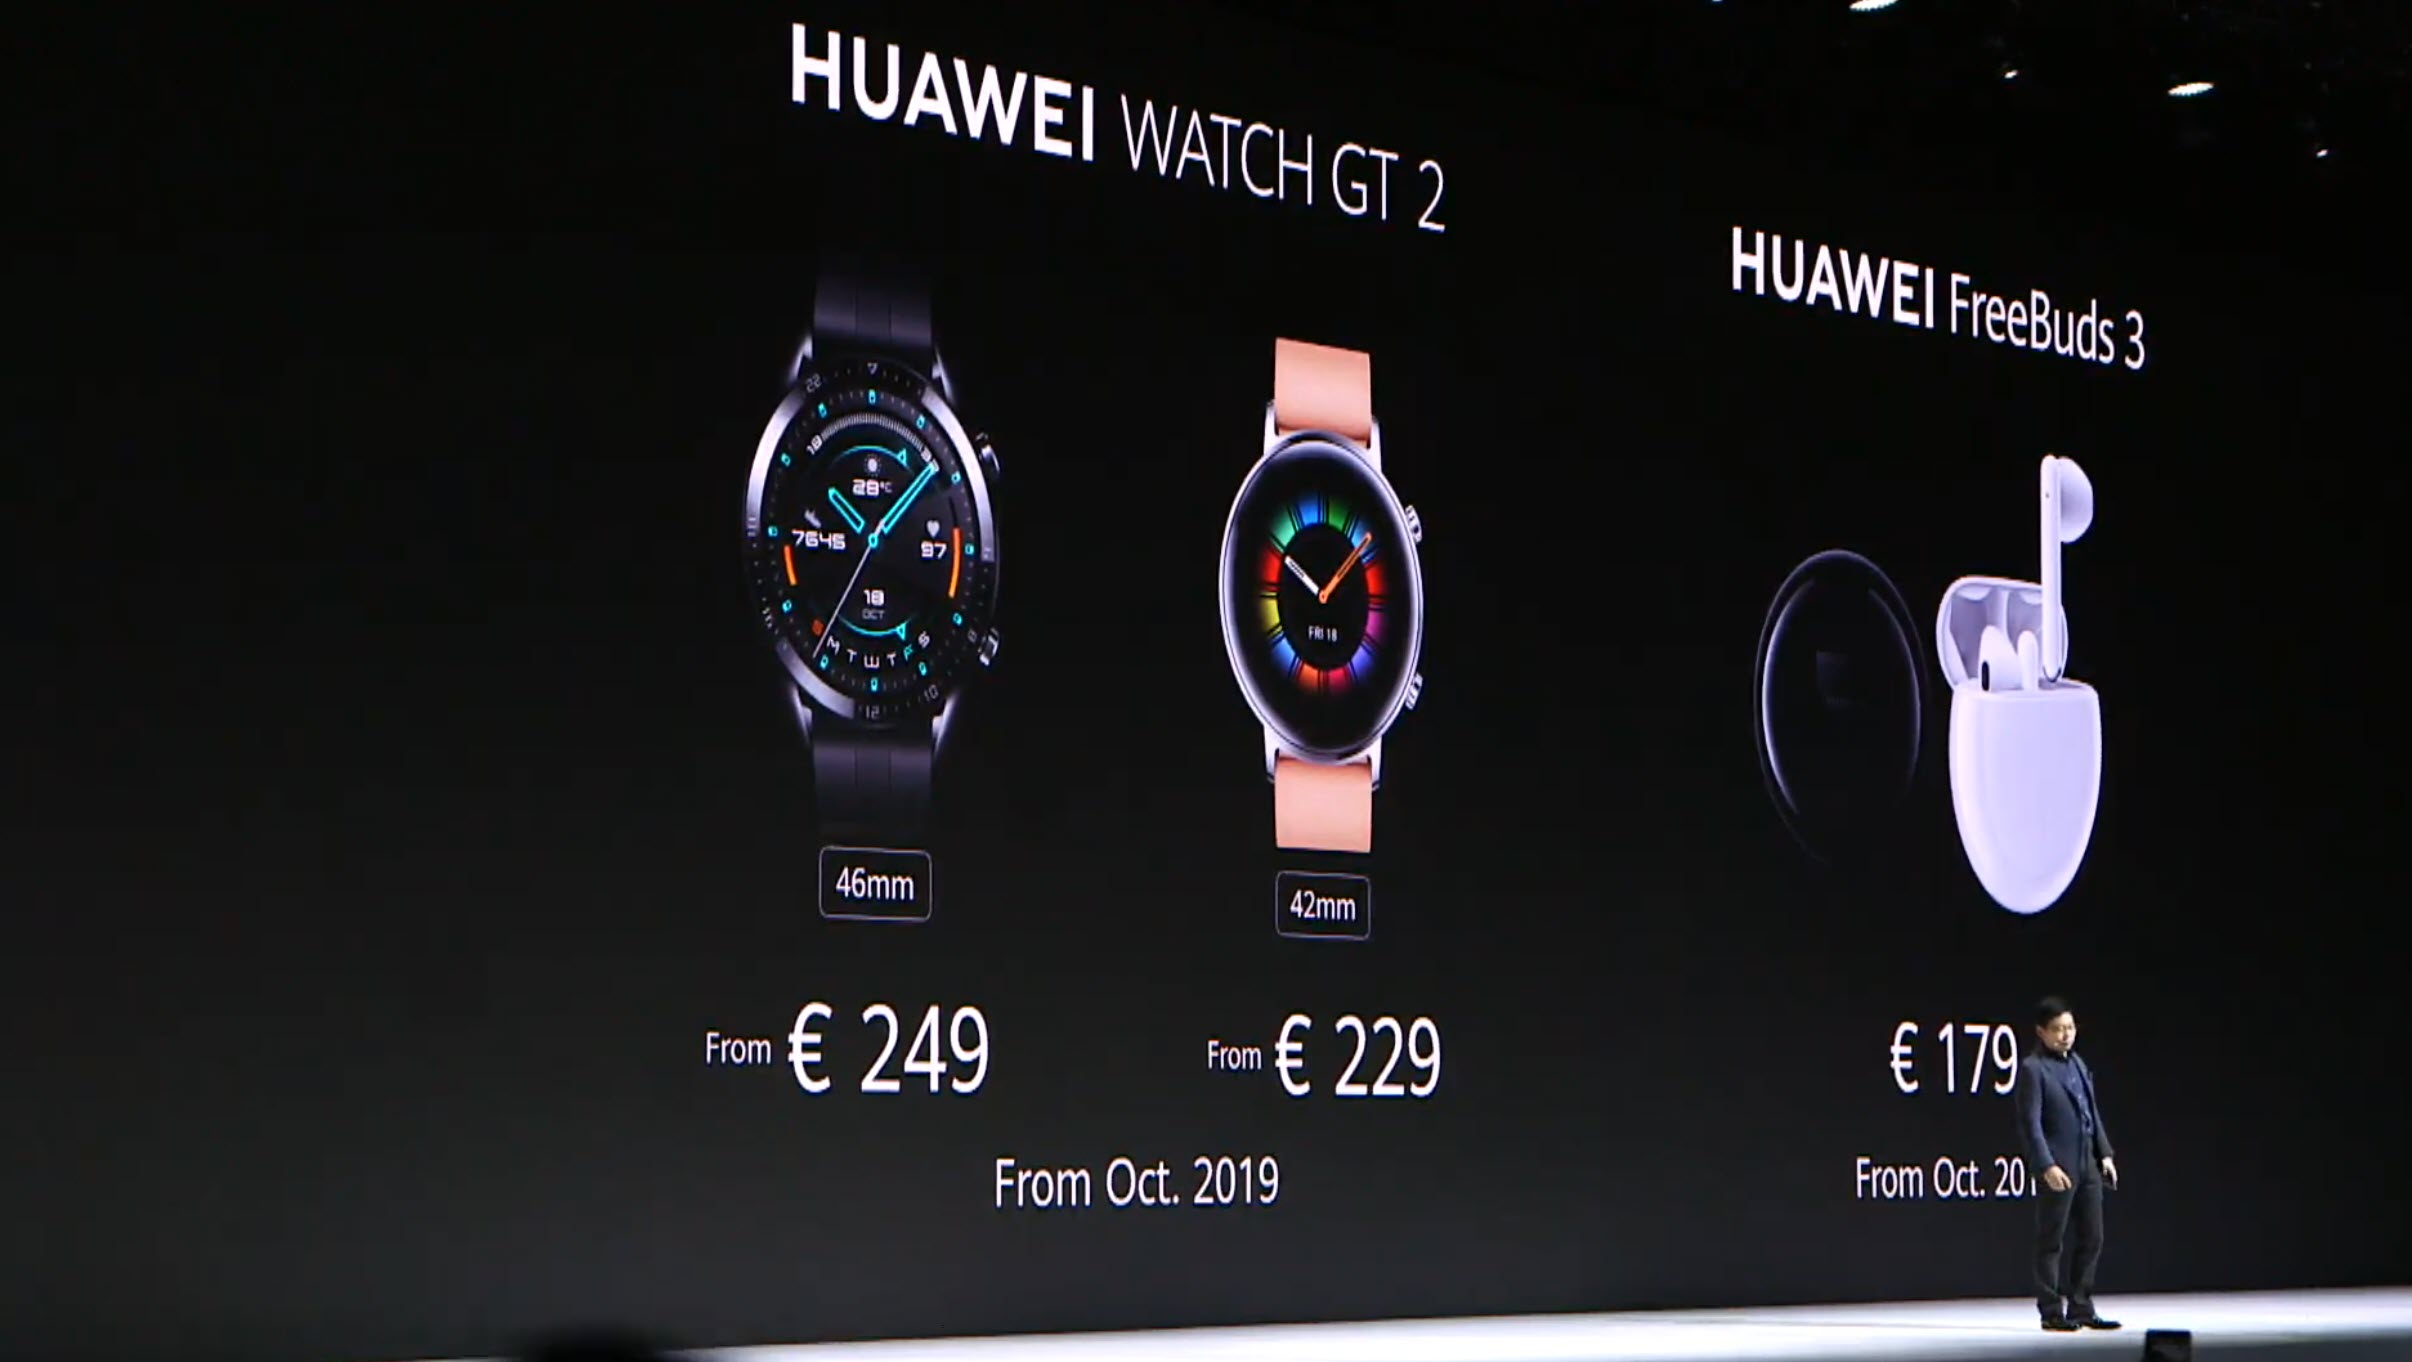 Huawei launches Watch GT 2